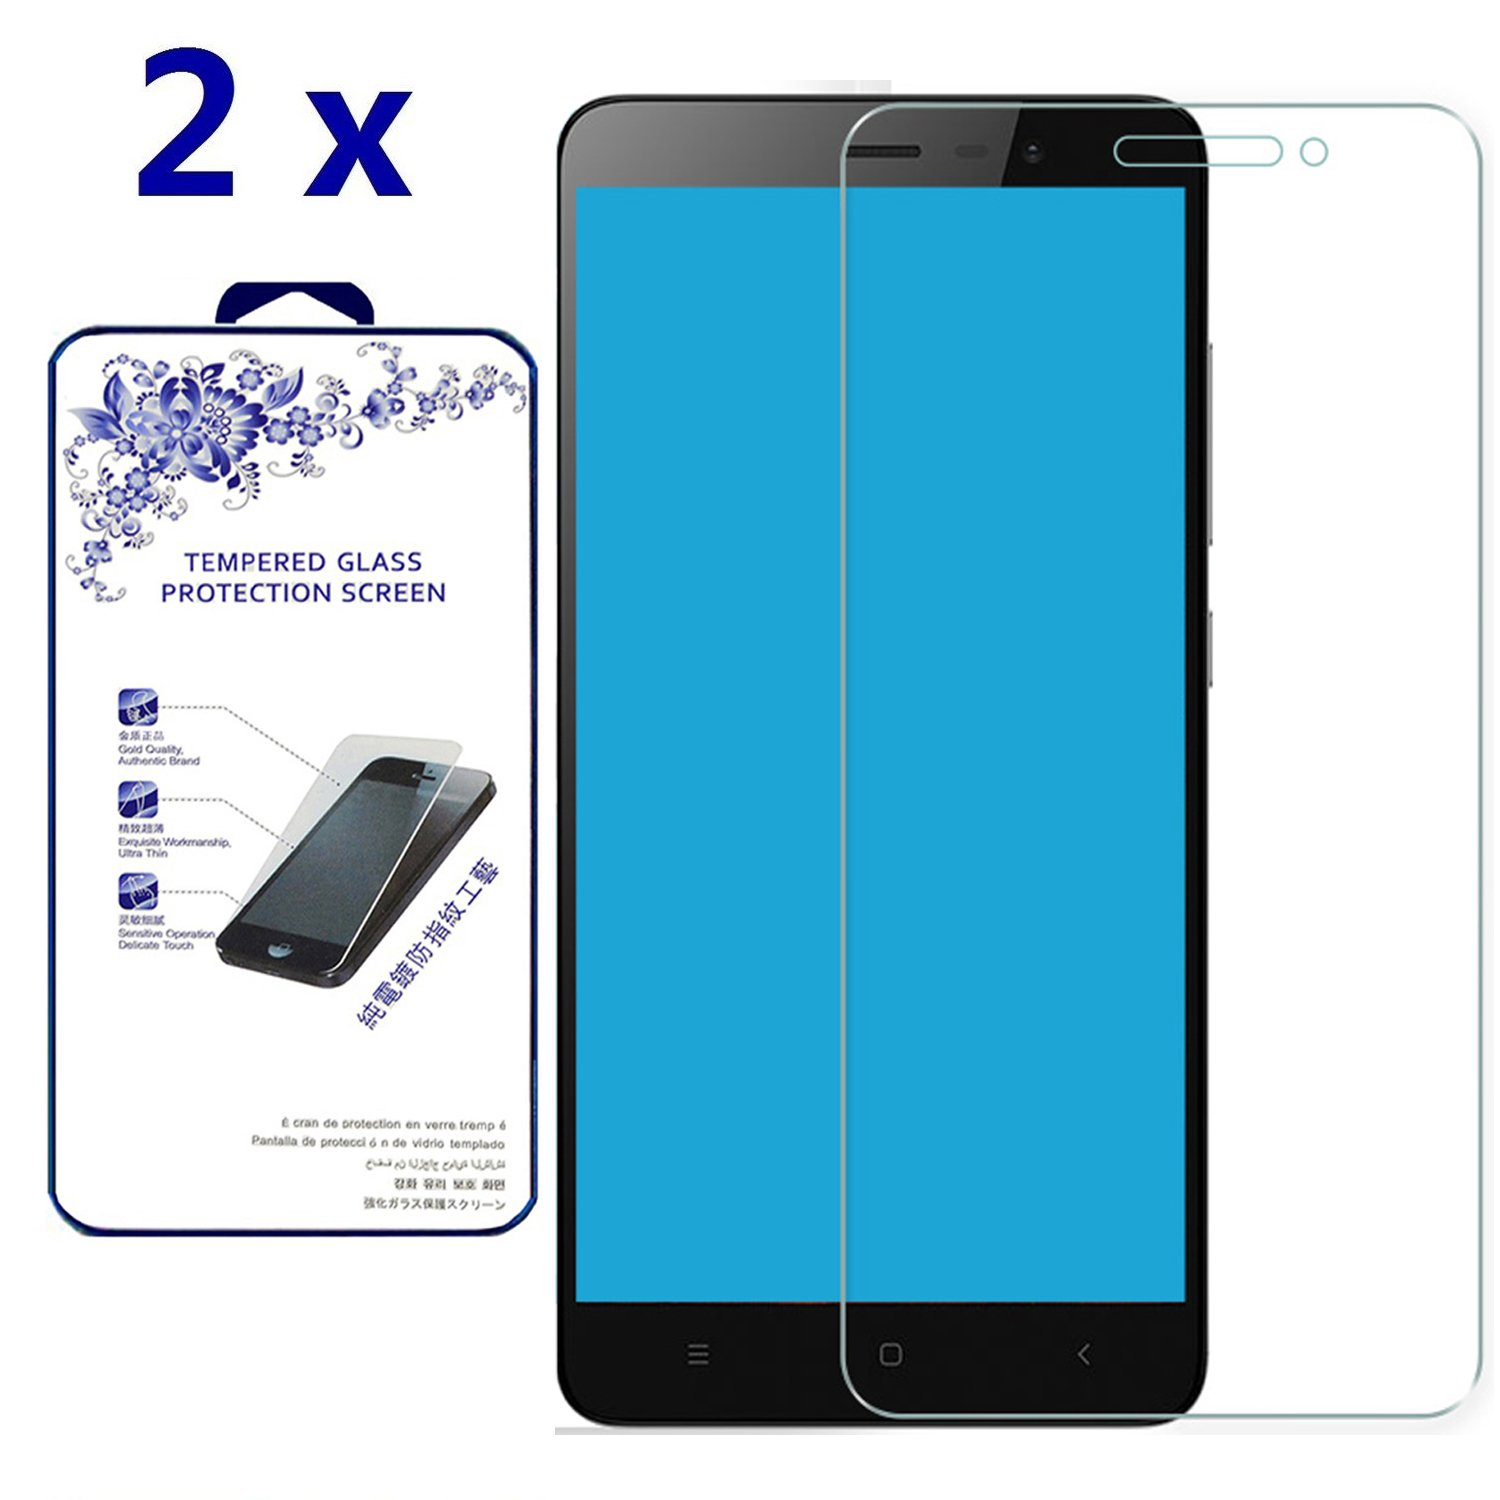 2x Glass For Xiaomi Redmi Note 3 Pro Country Boots Zongos Premium Tempered Screen Protector Anti Scratch Bubble Free 03mm